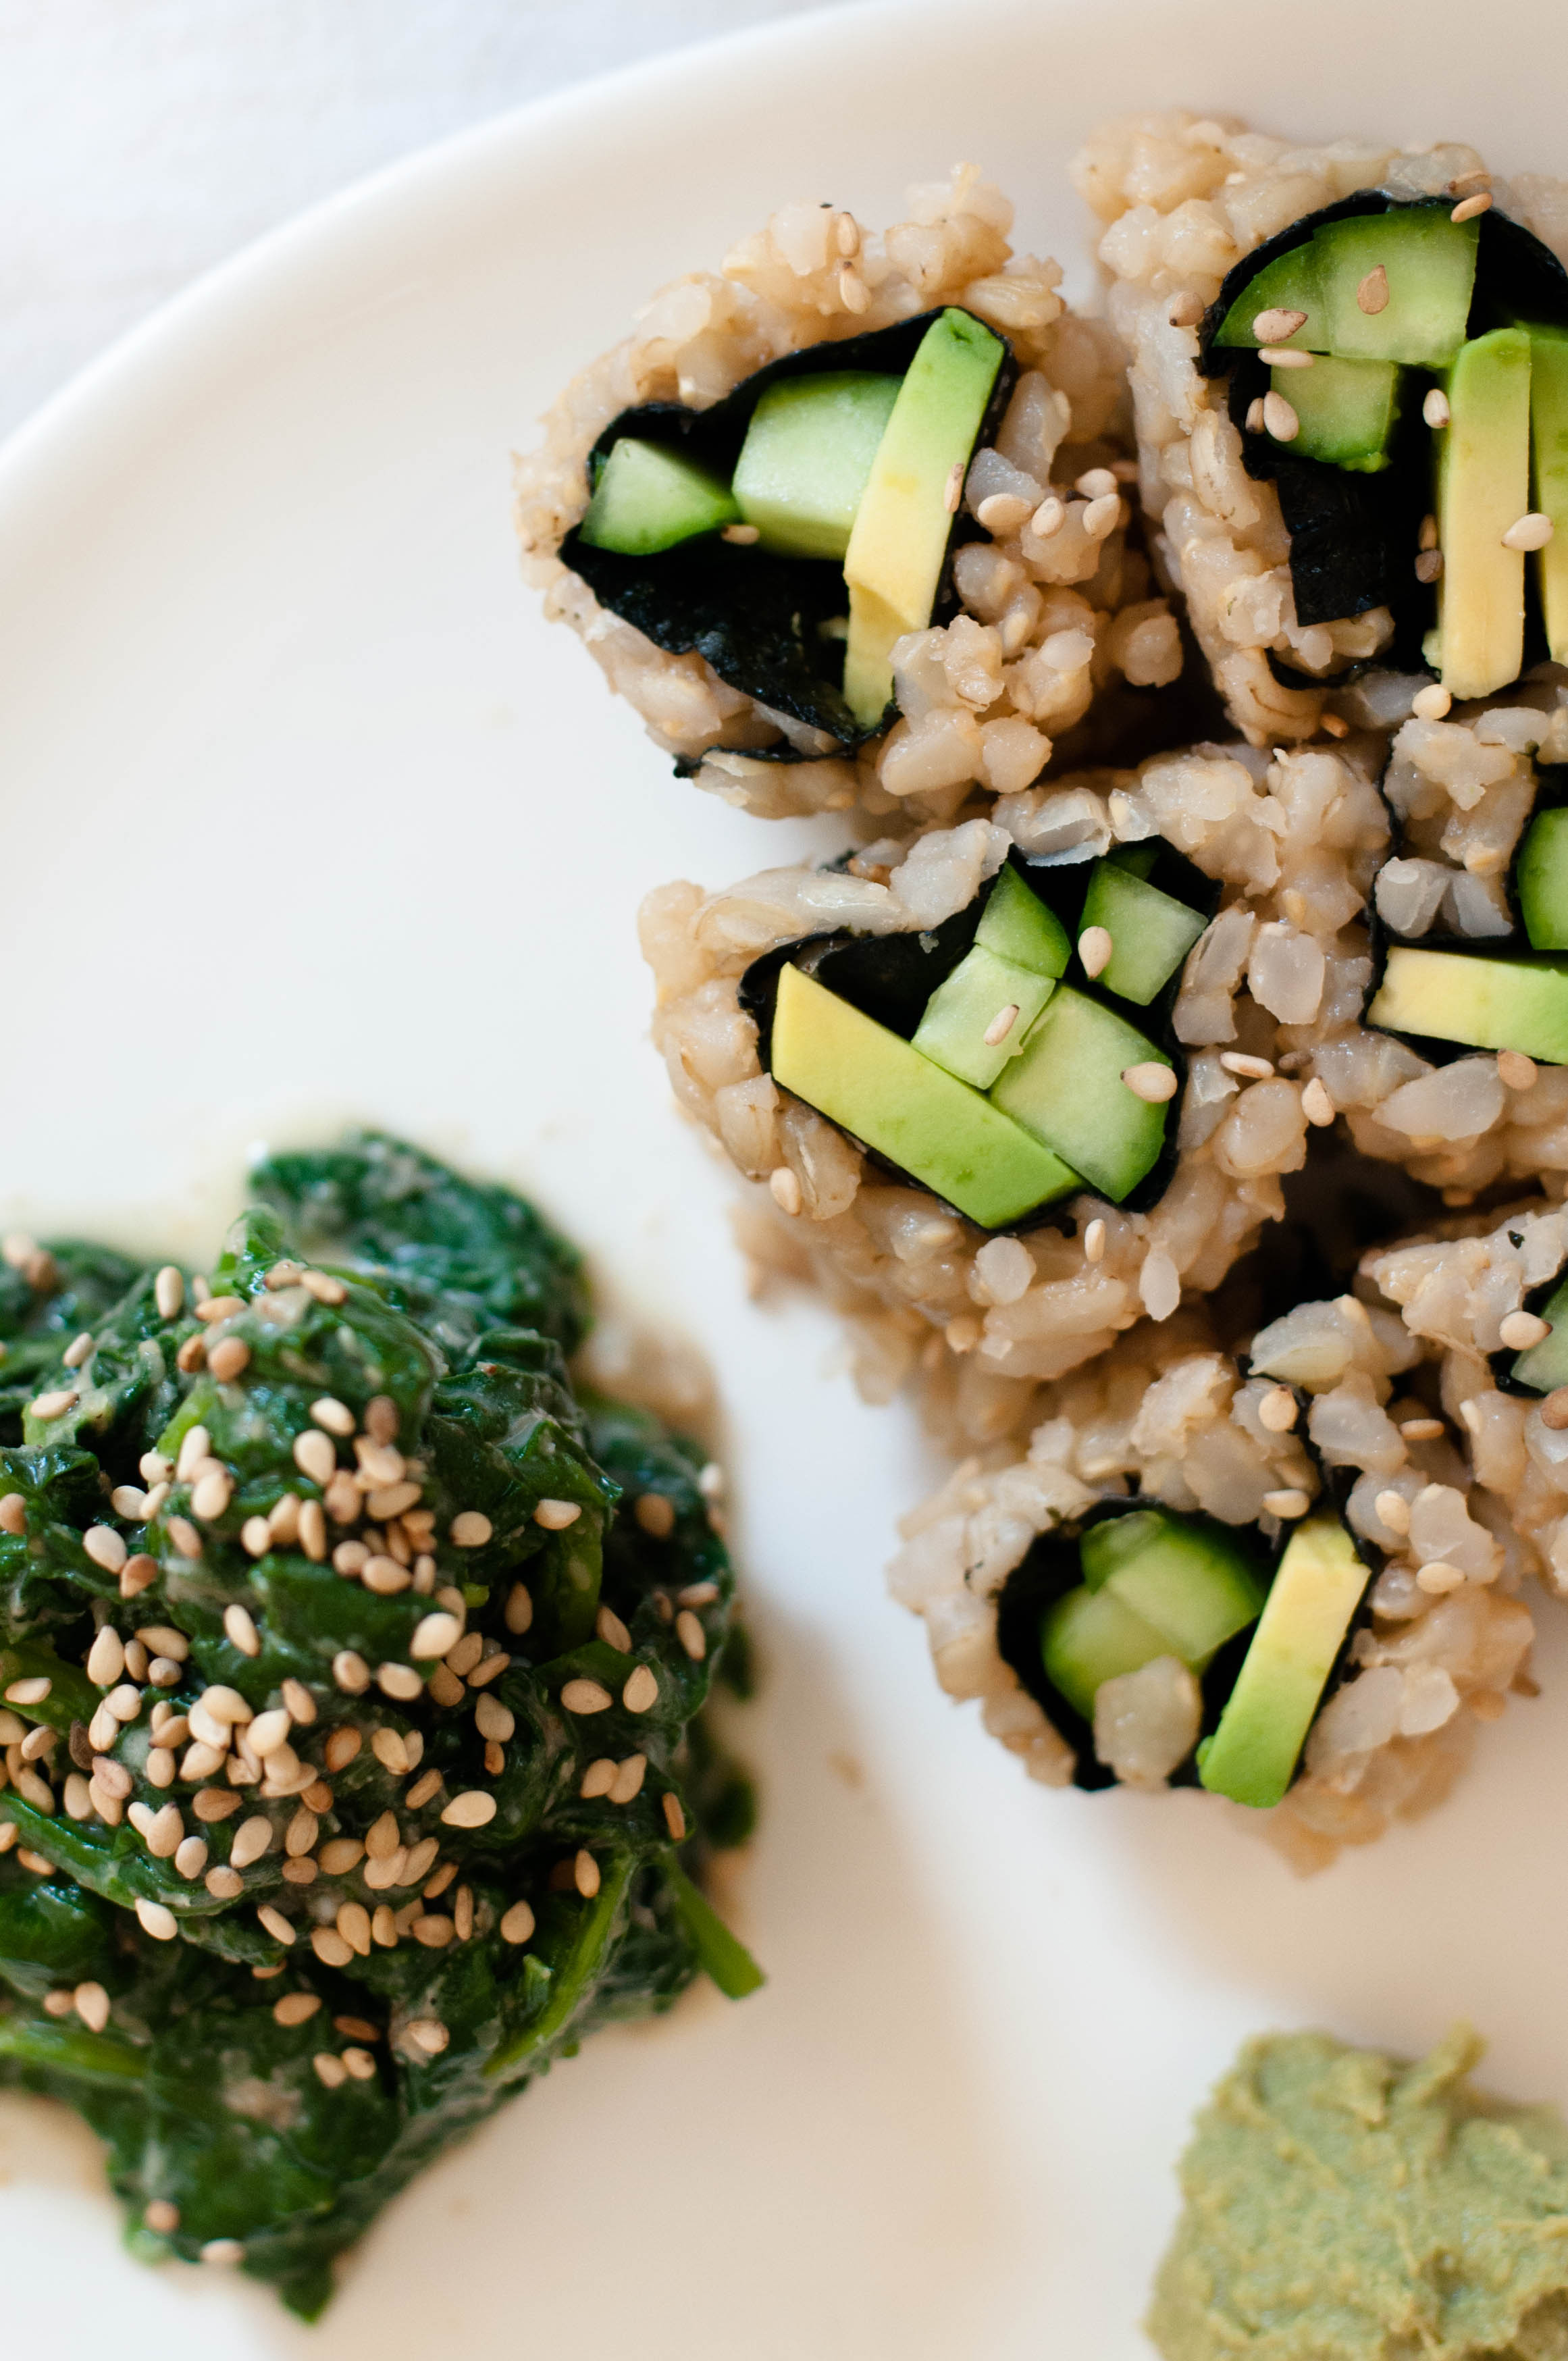 Vegetable Sushi Roll & Spinach Sesame Miso Salad (Goma-ae) - The Scratch Artist